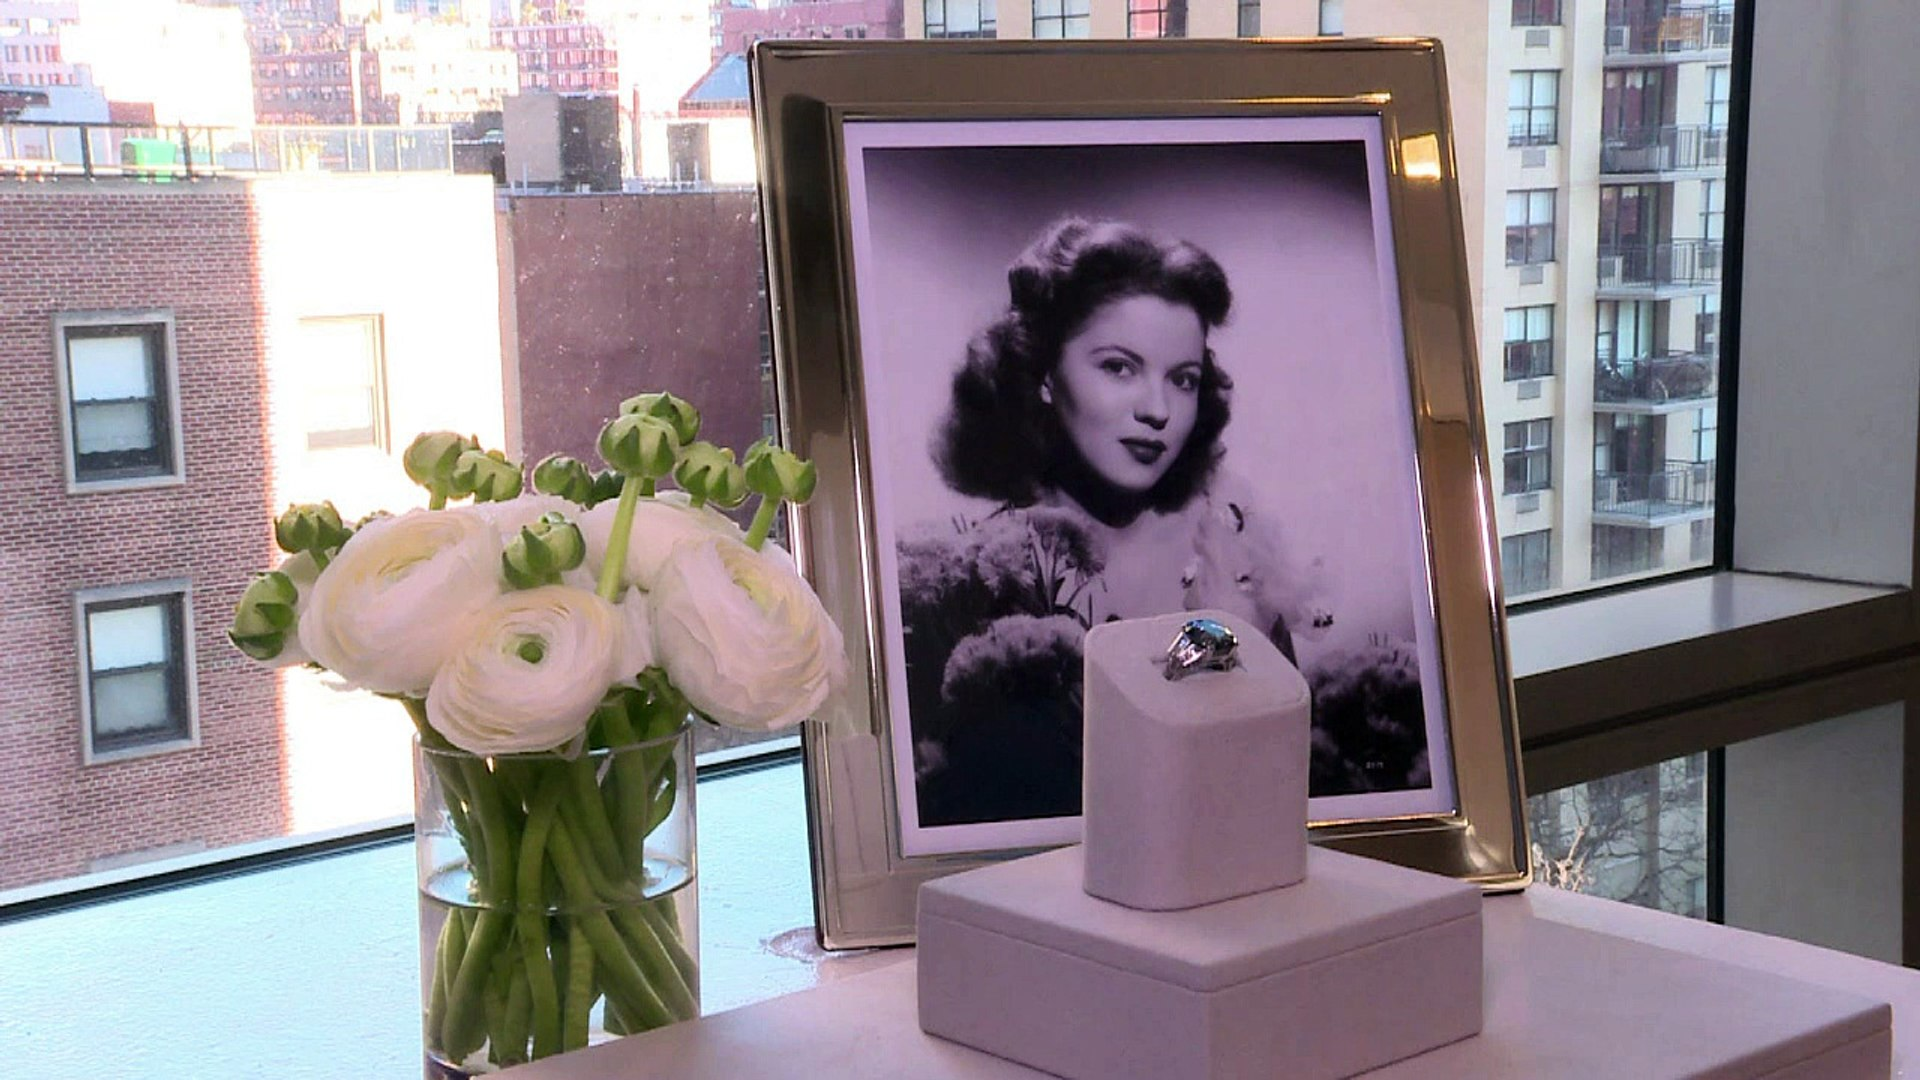 Shirley Temple diamond ring on sale for $25-35m in NY